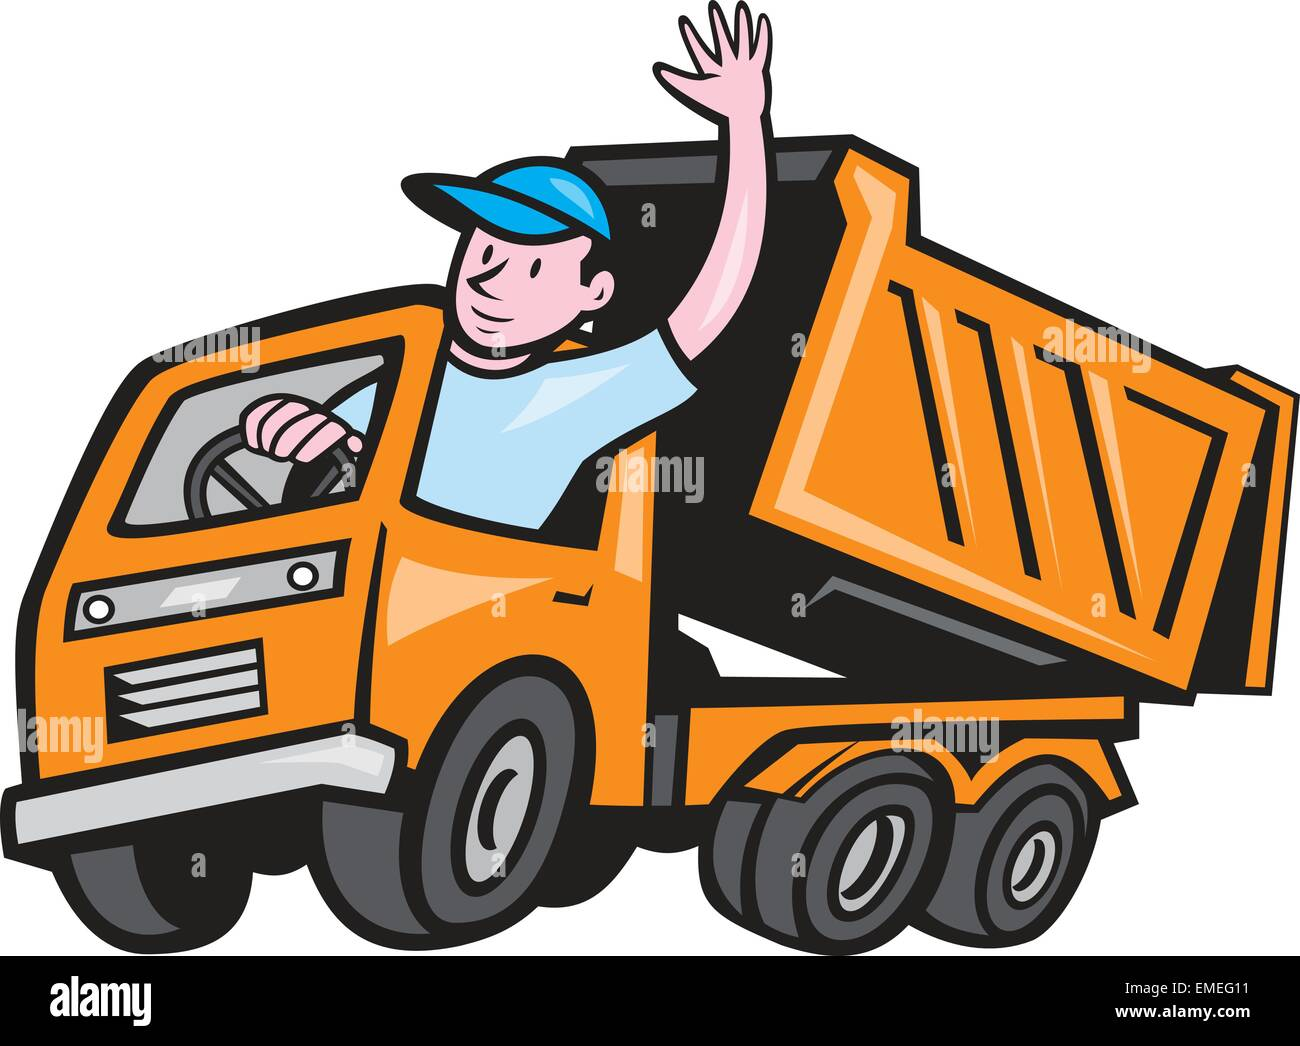 dump truck driver waving cartoon stock vector art illustration vector image 81454493 alamy. Black Bedroom Furniture Sets. Home Design Ideas